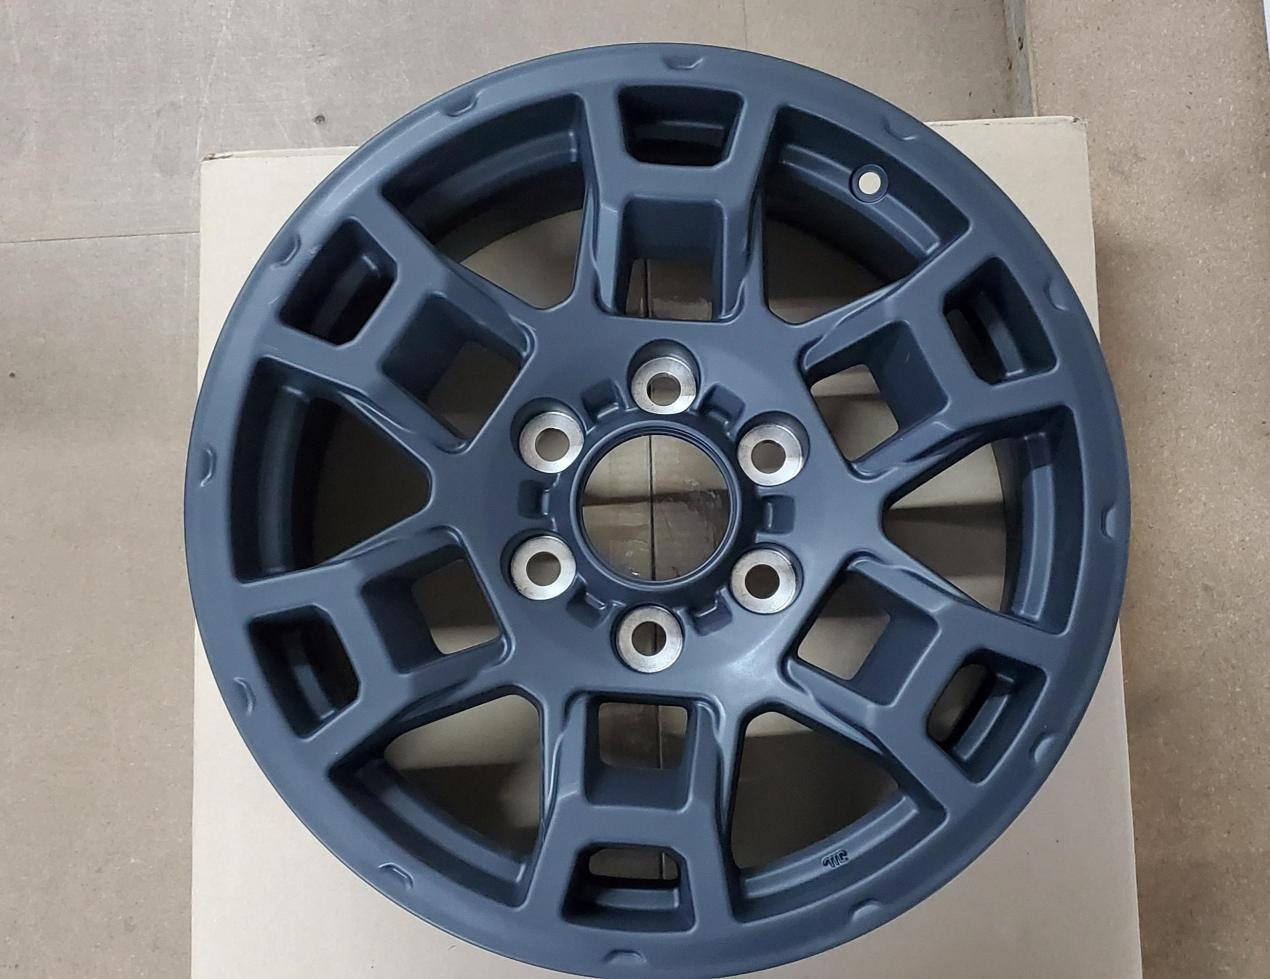 Pictures of the new 2021 trd pro wheels-2-jpg